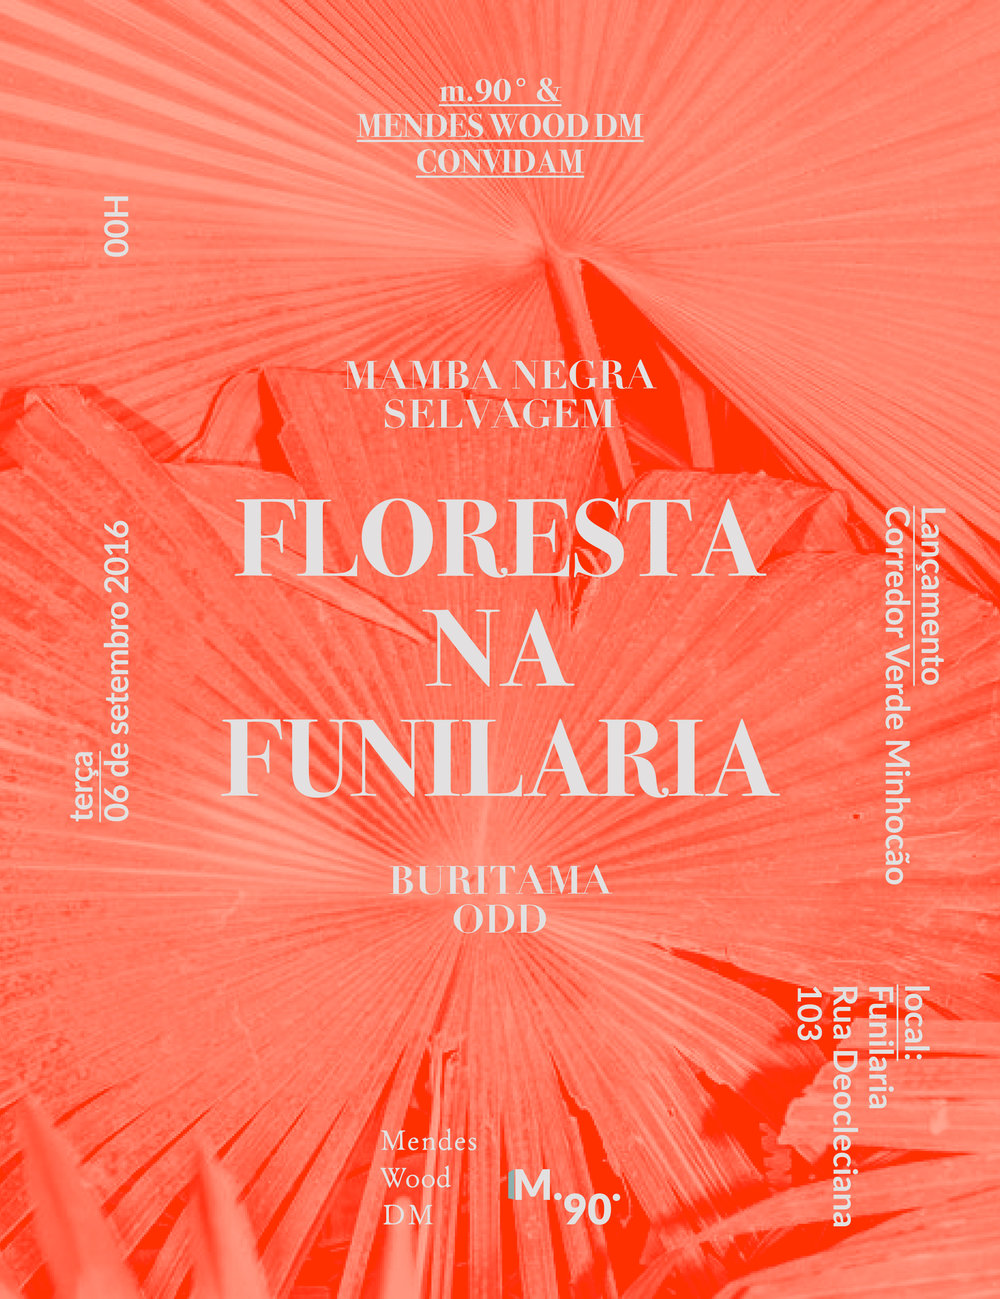 FLORESTA MIL LAYOUTS-19.jpg